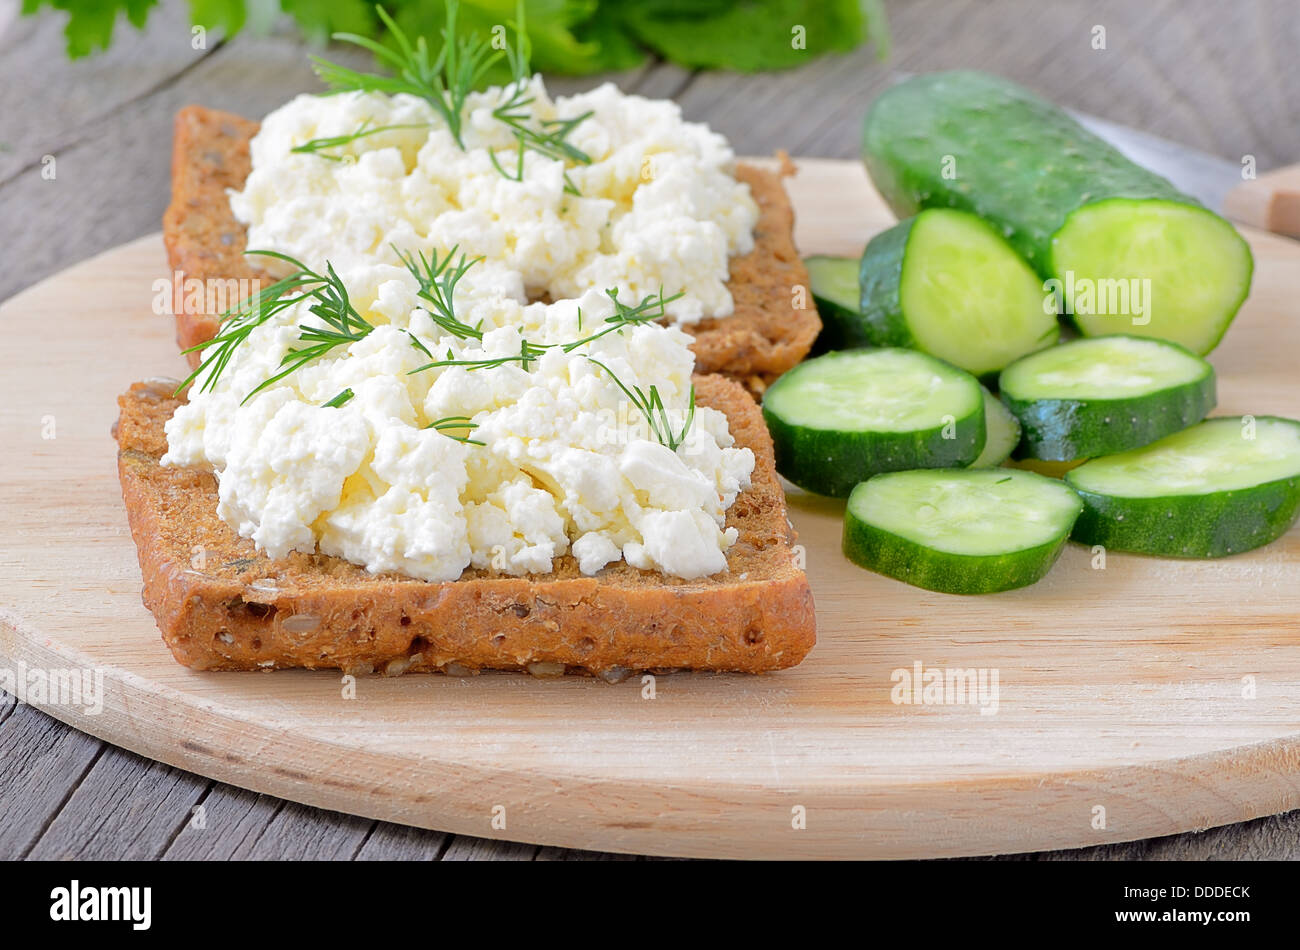 Sandwiches with curd cheese and cucumber slices on wooden cutting board. - Stock Image